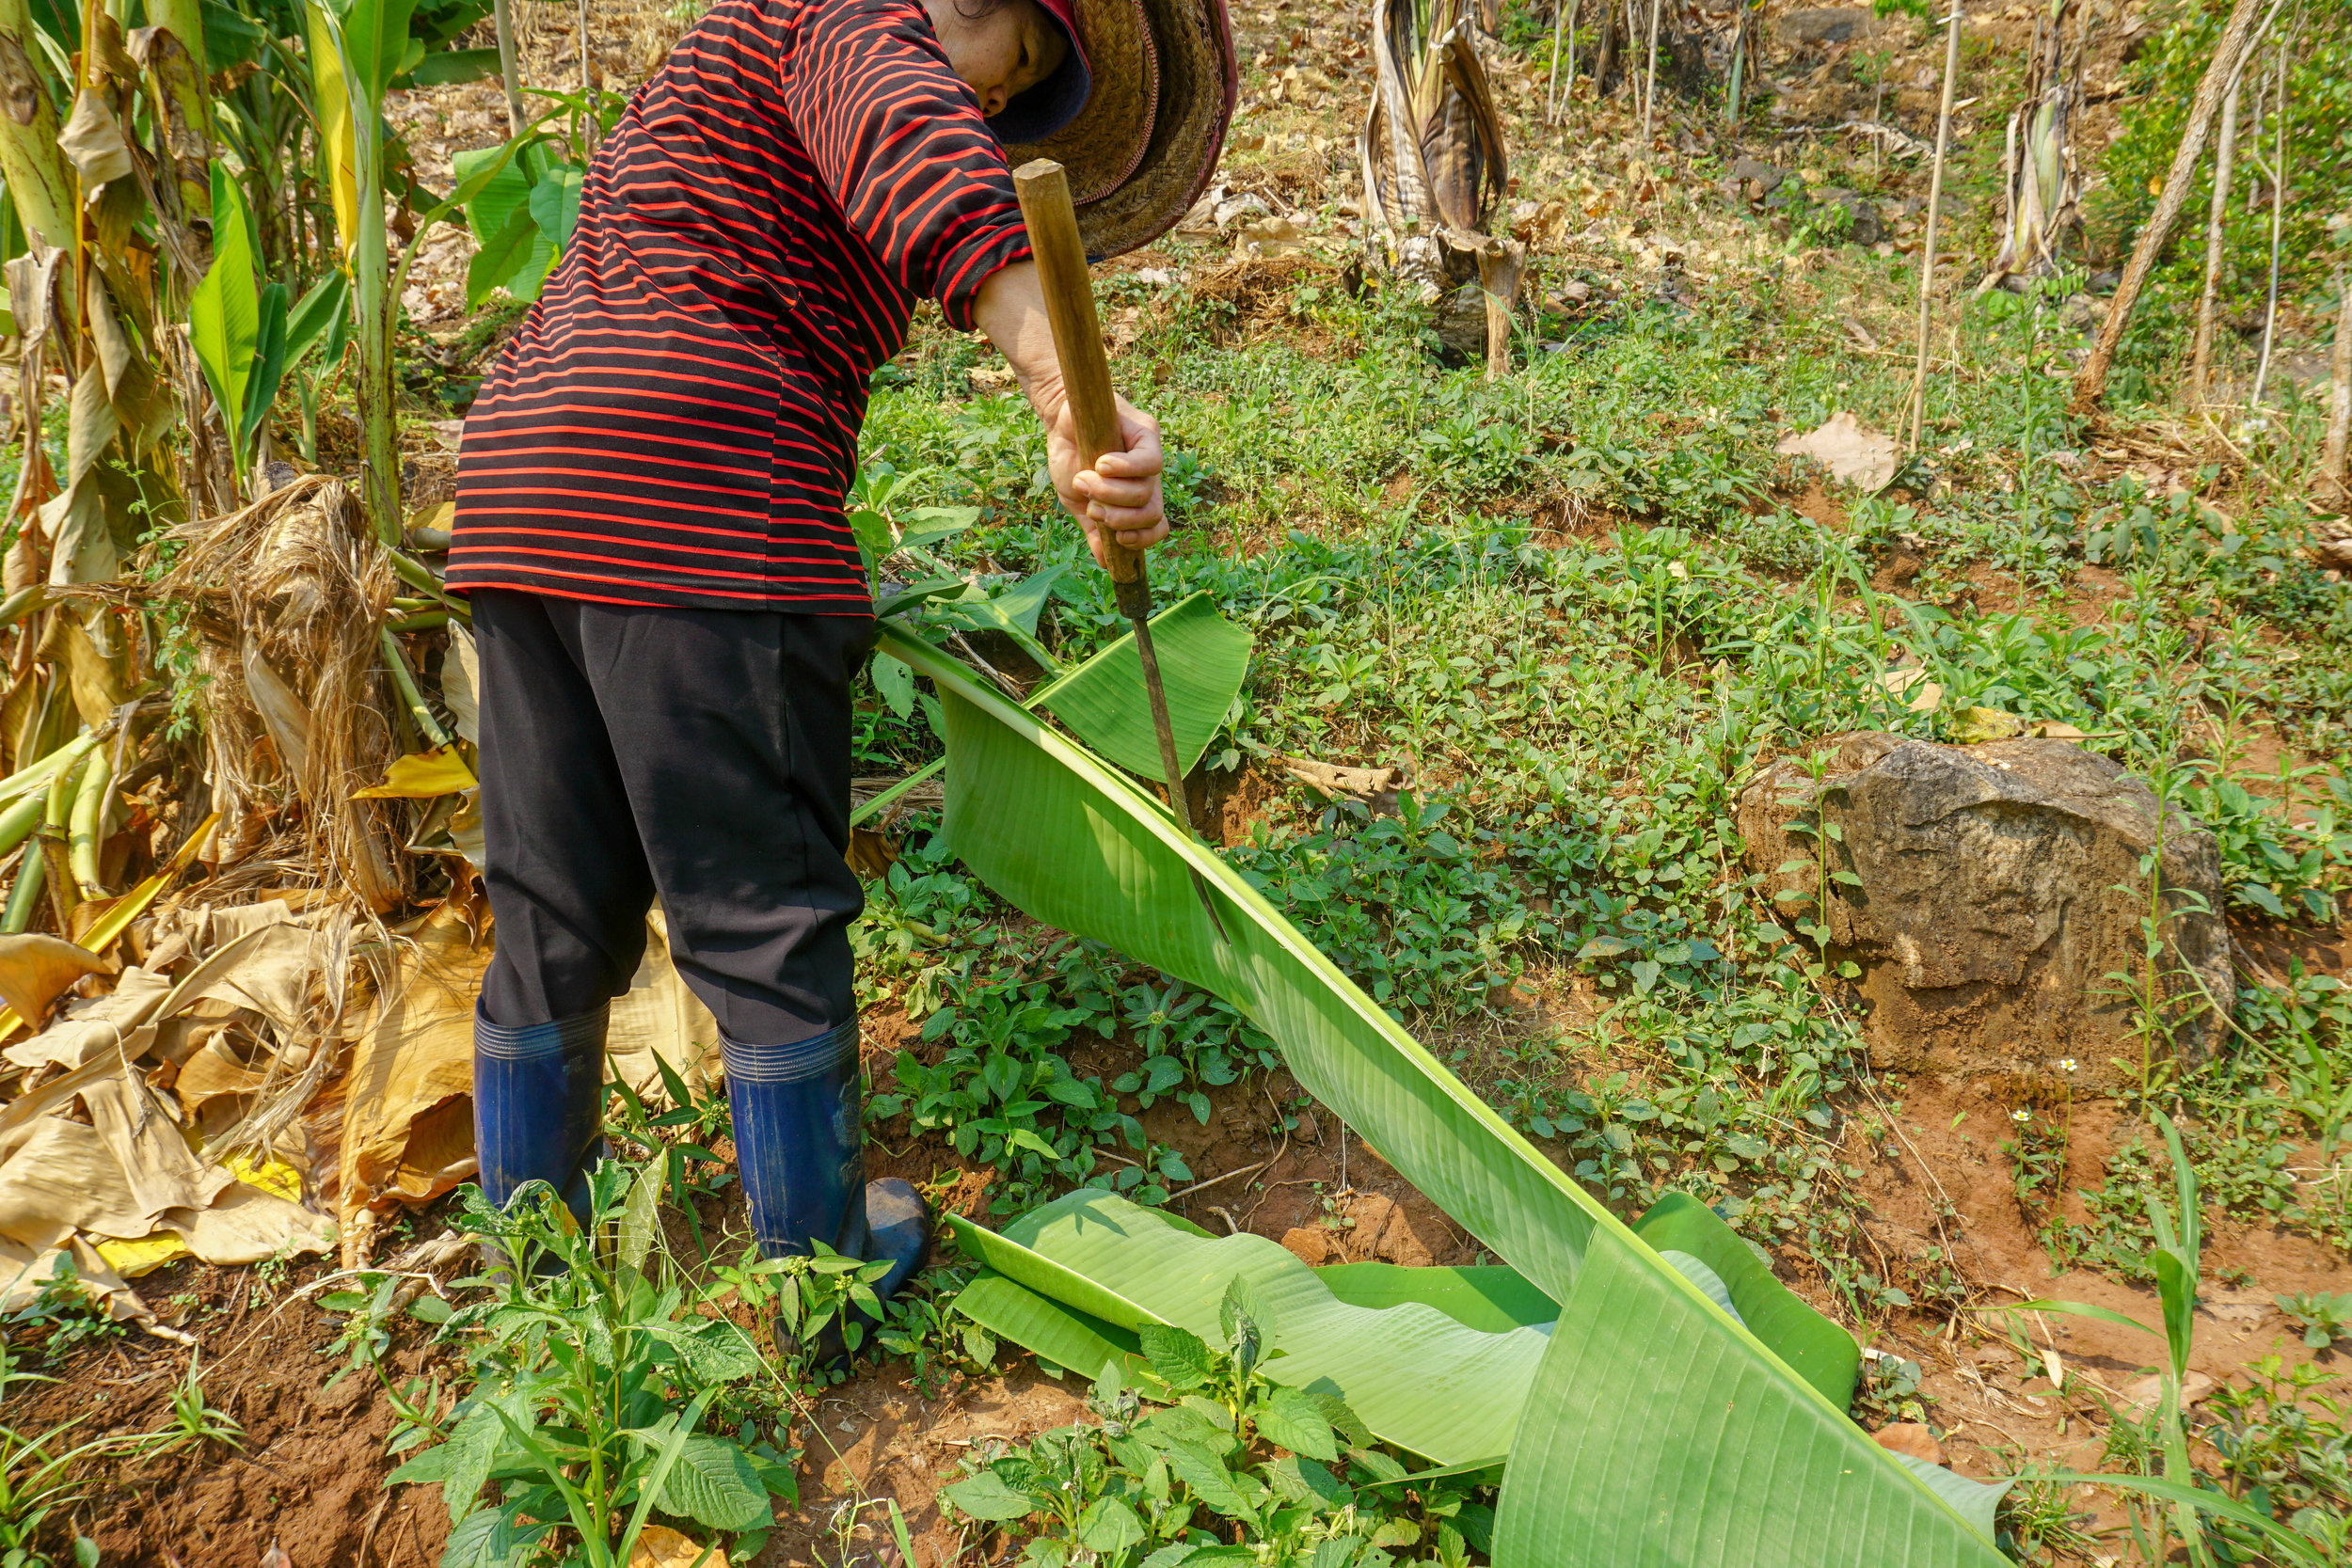 Banana_leaves-Chiangmai.jpg